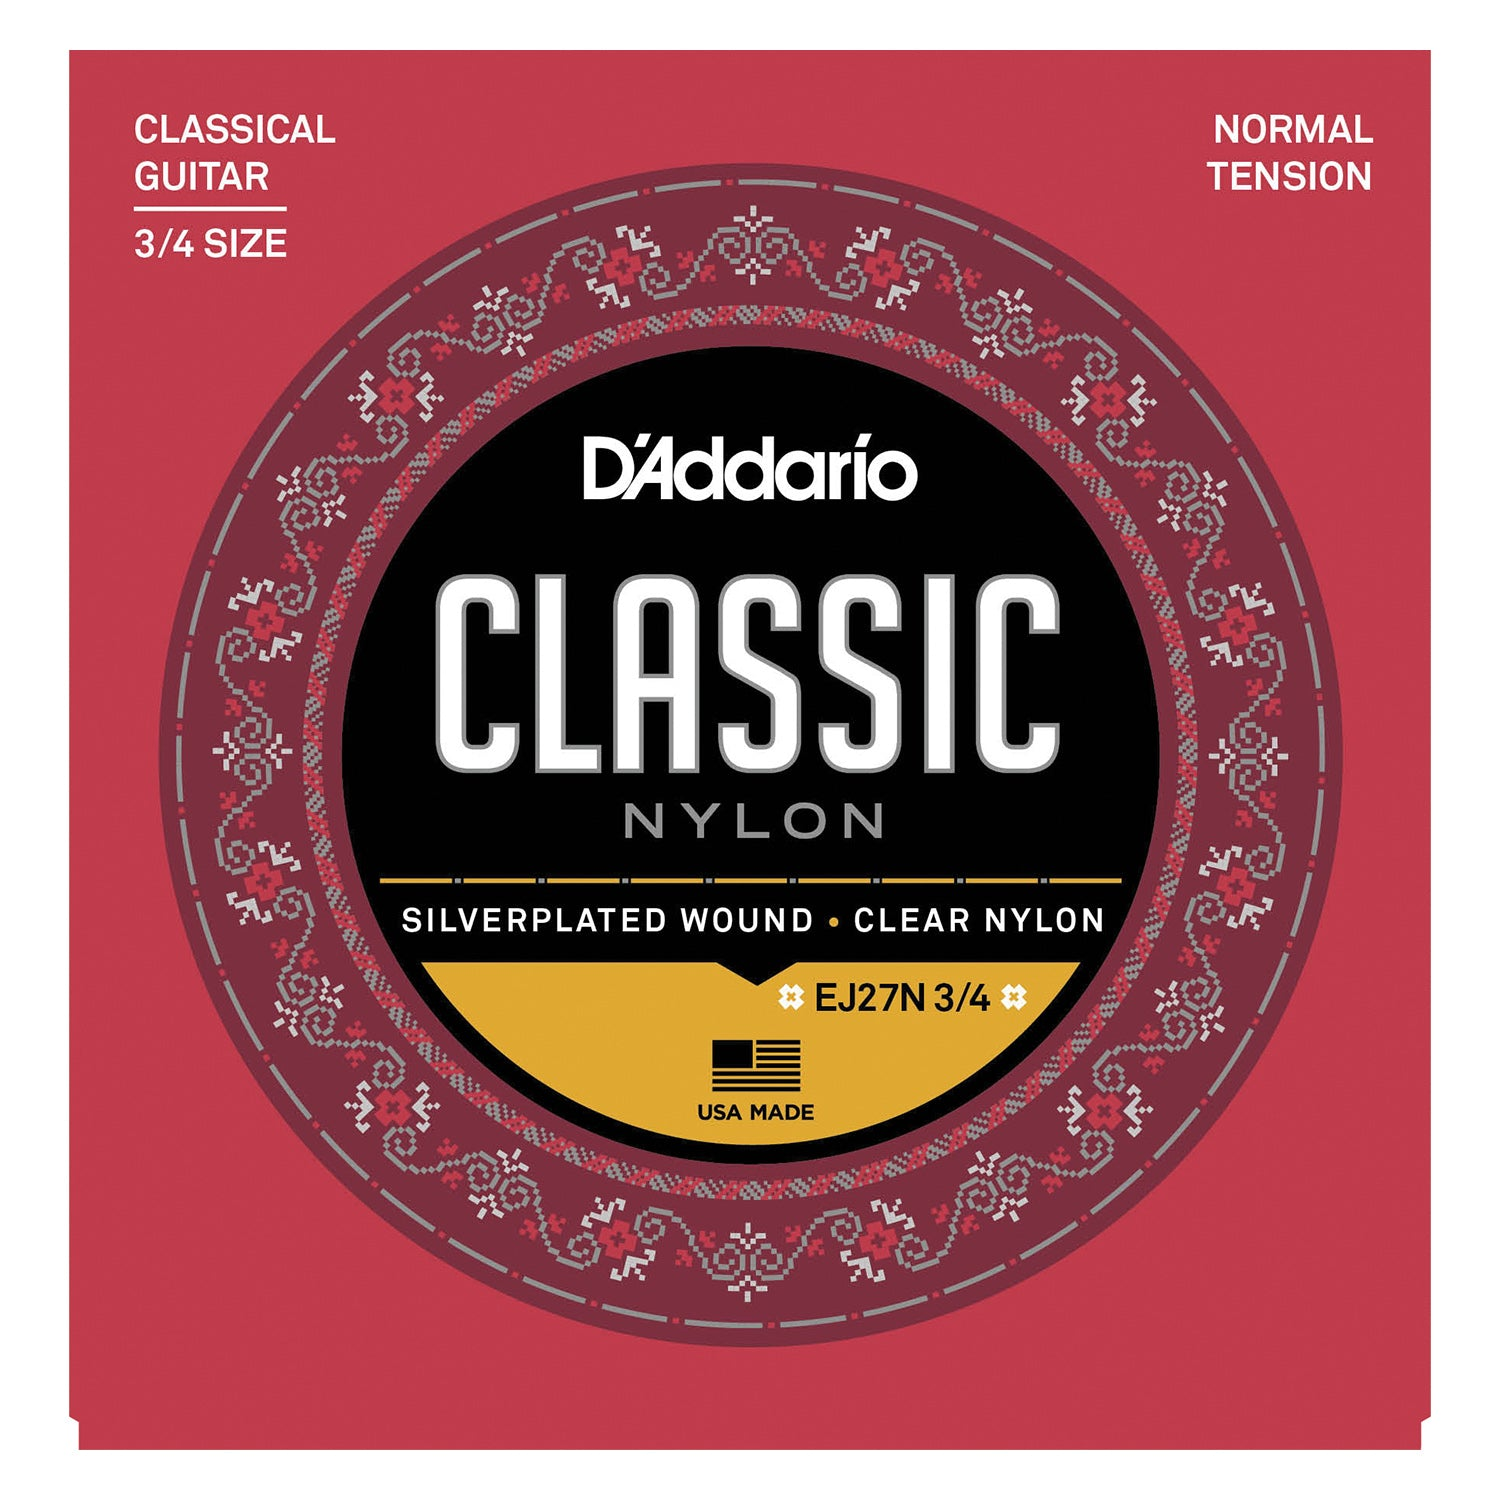 D'Addario EJ27N 3/4 Student Nylon Fractional Classical Guitar Strings, Normal Tension